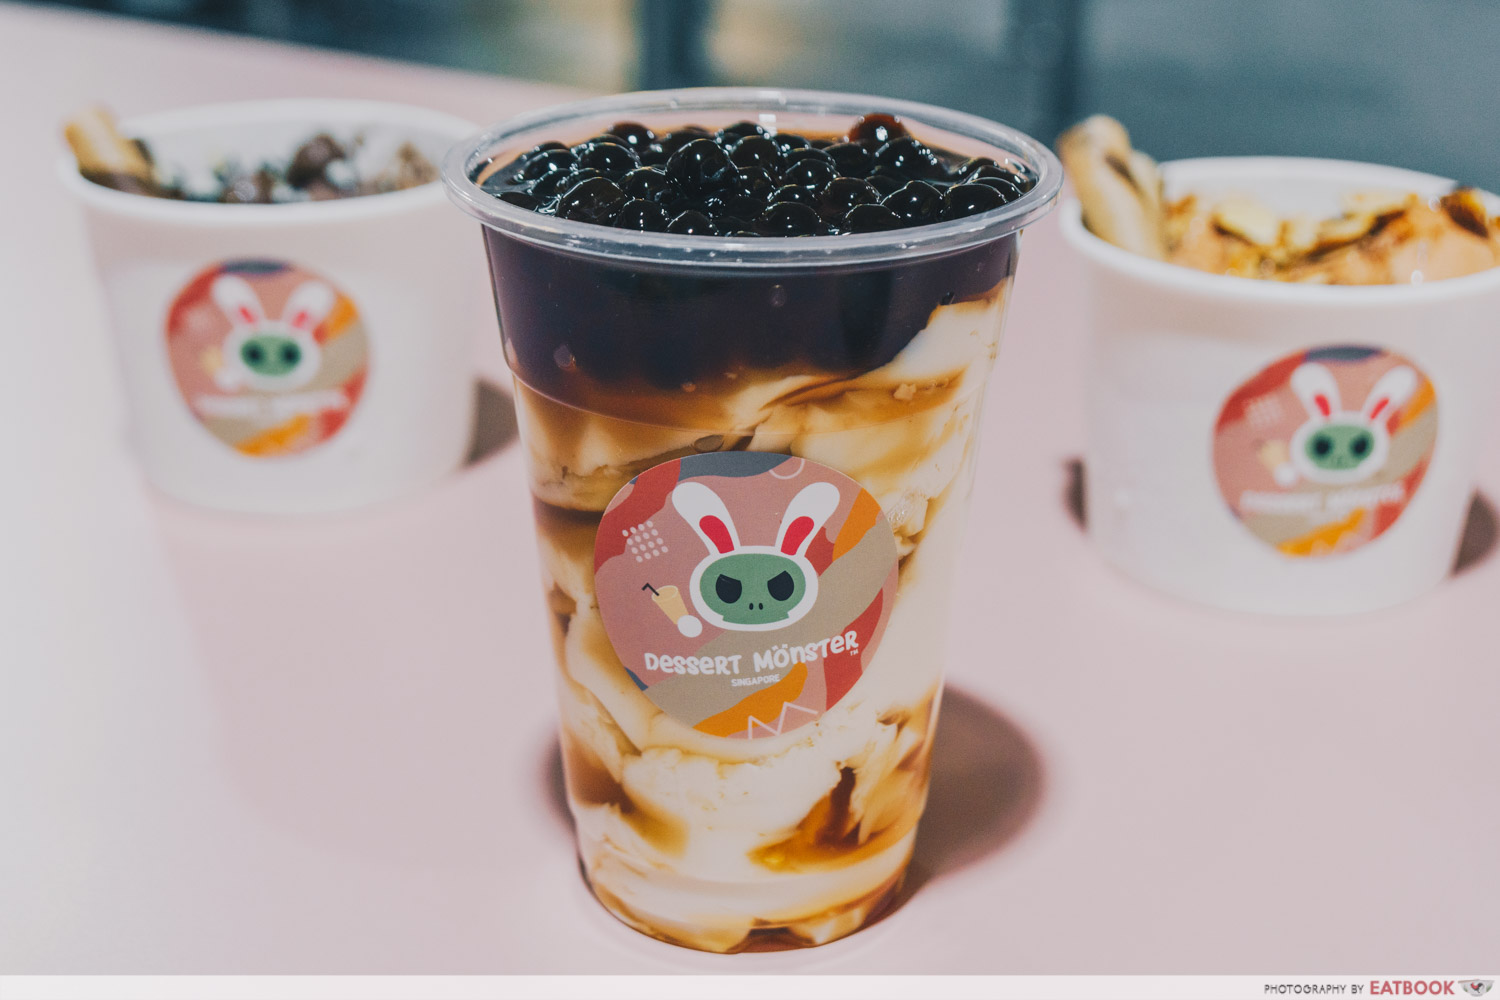 Dessert Monster - Pearly Taho